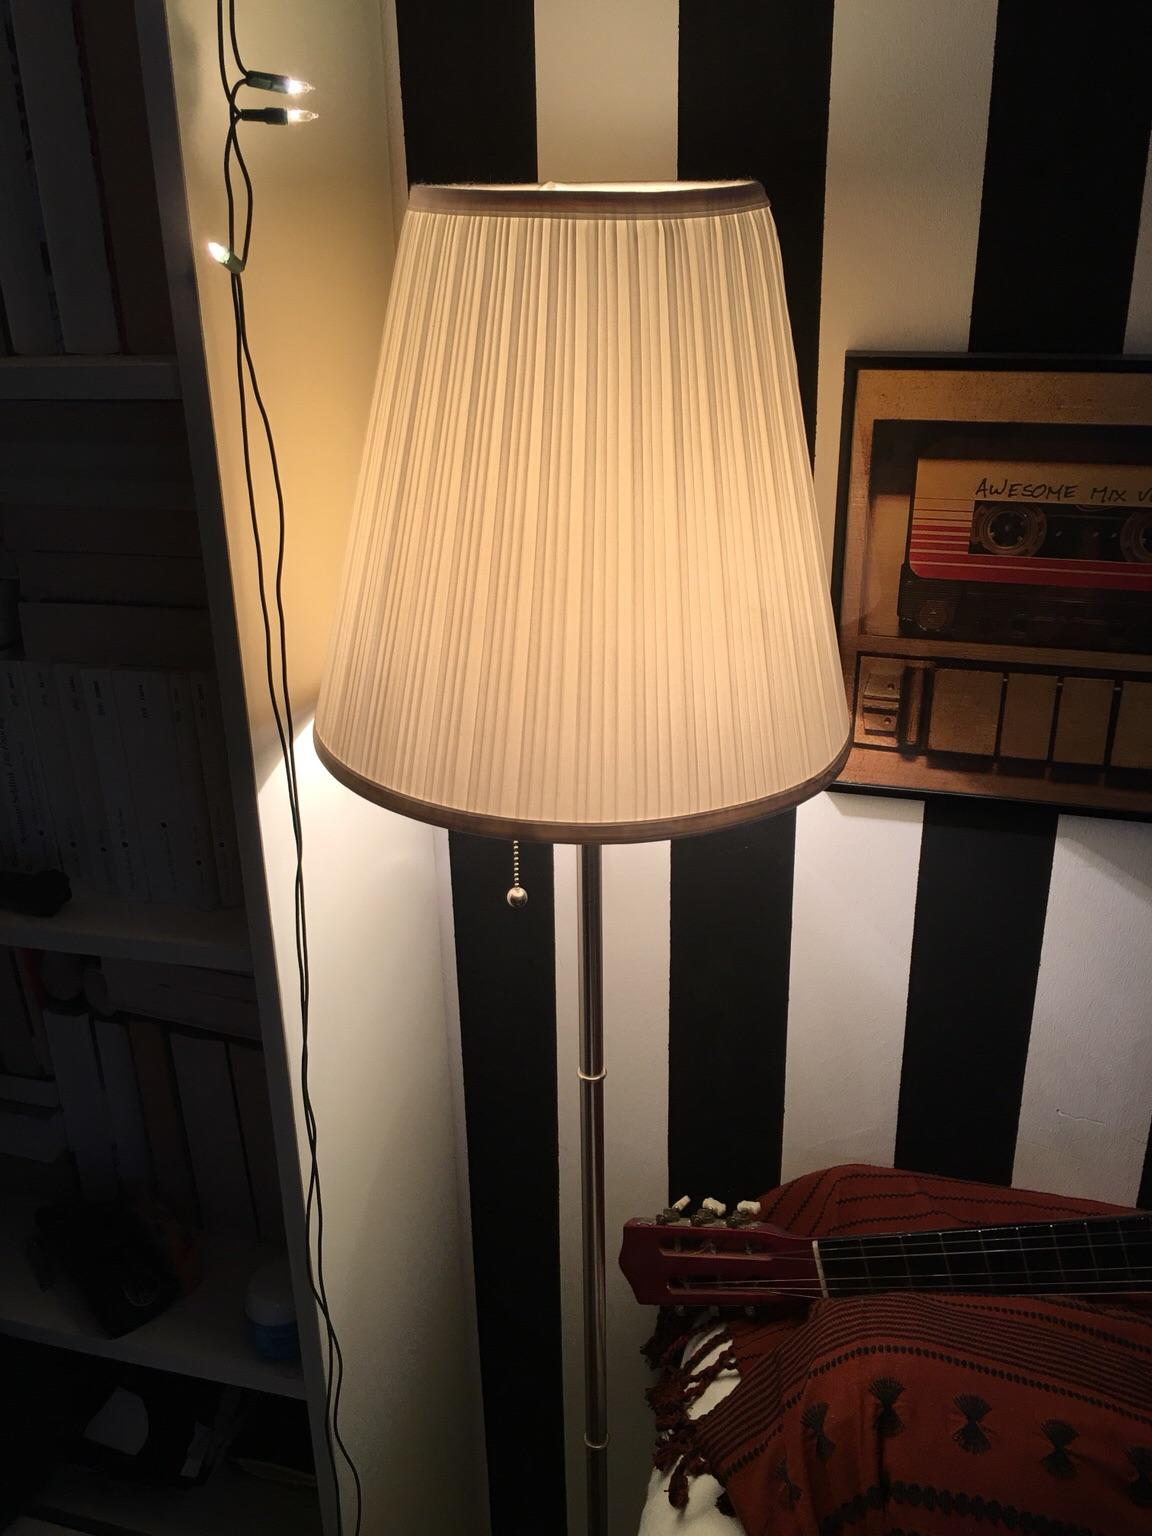 Stehlampe Arstid Ikea In 40547 Dusseldorf For 20 00 For Sale